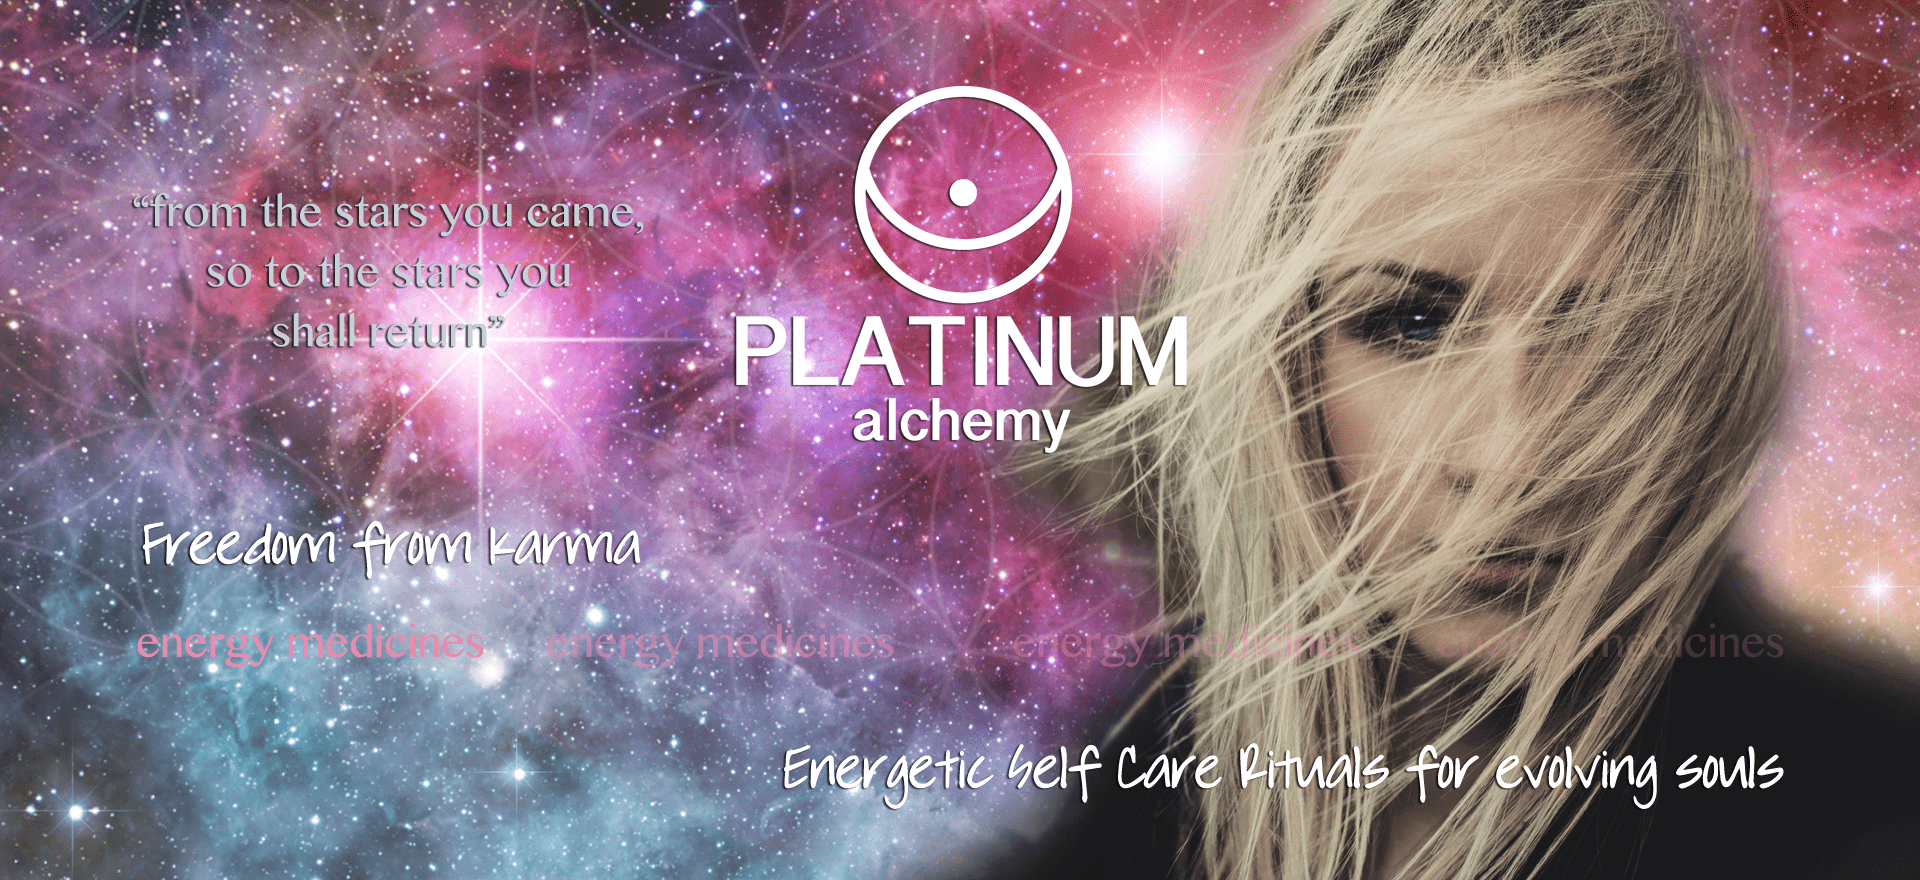 Platinum Alchemy product range